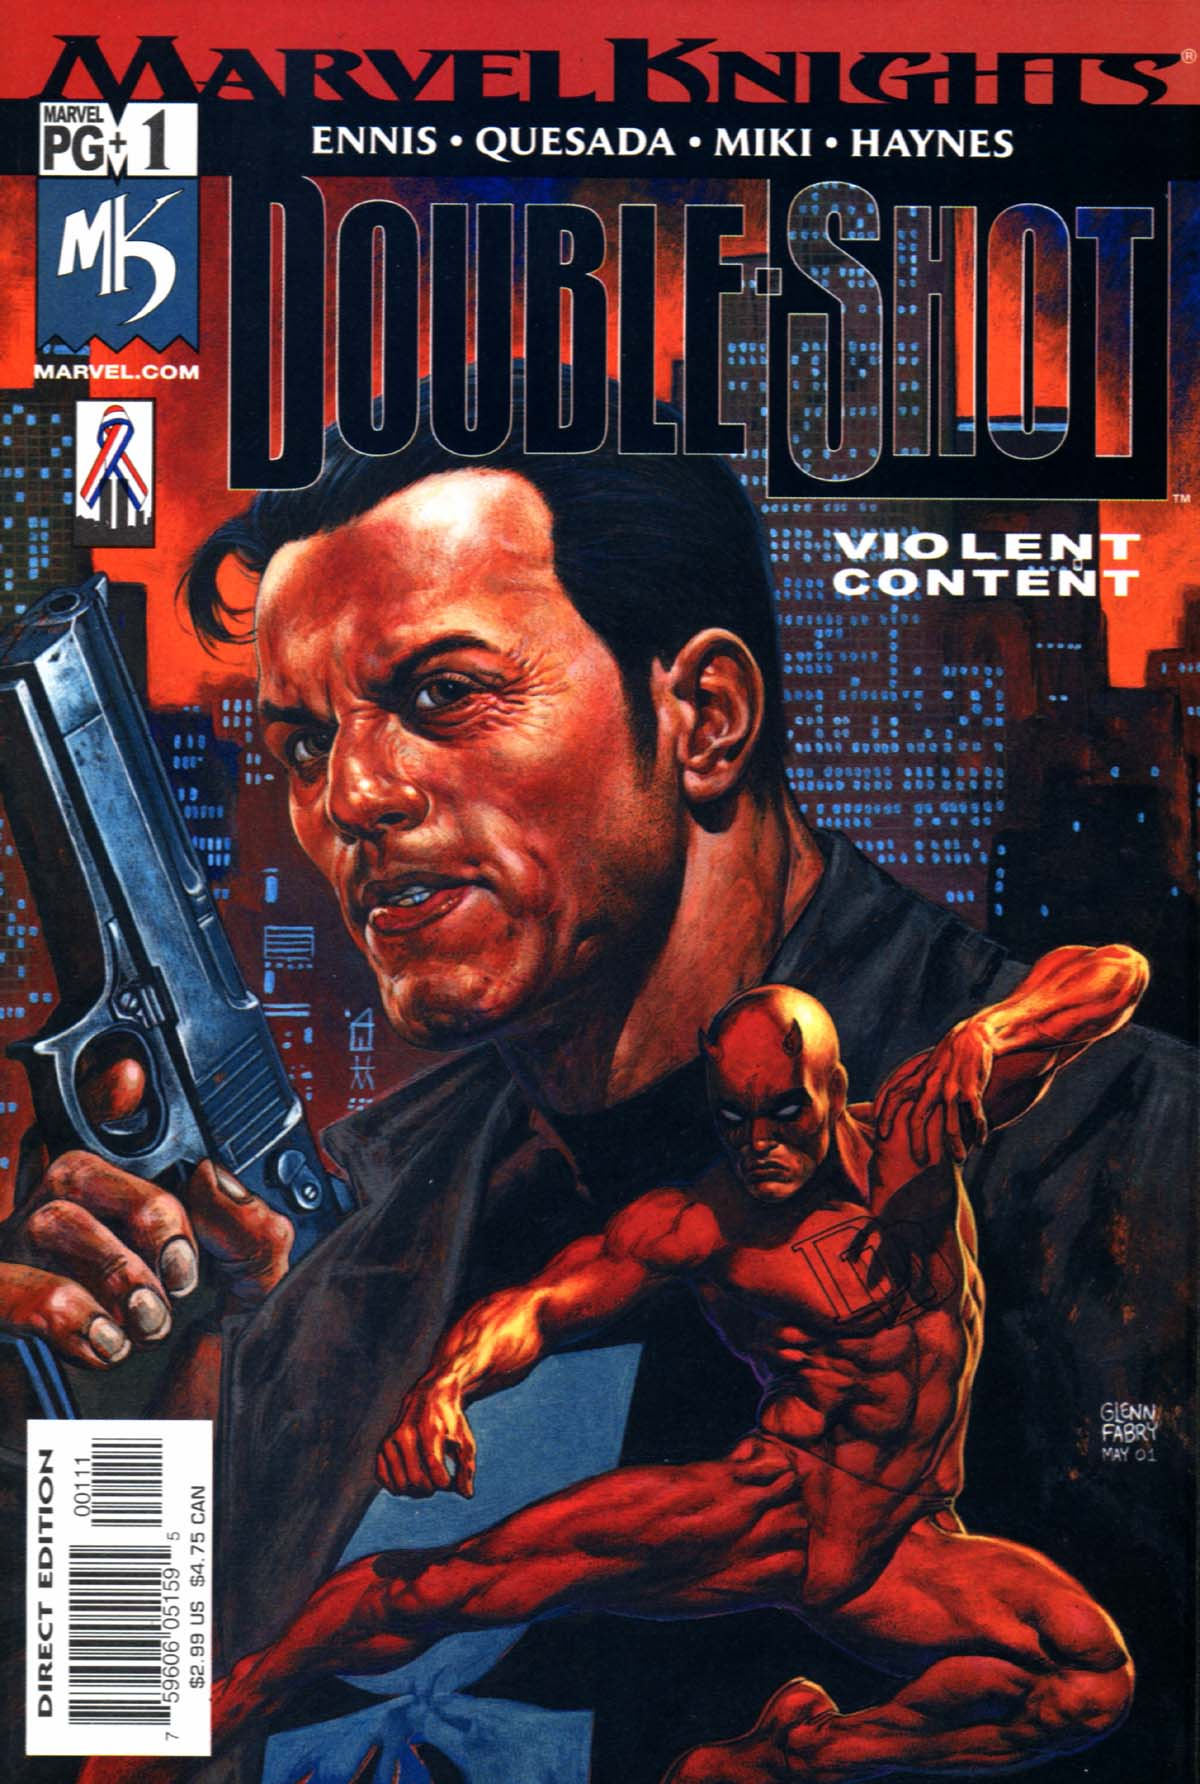 Read online Marvel Knights Double Shot comic -  Issue #1 - 1